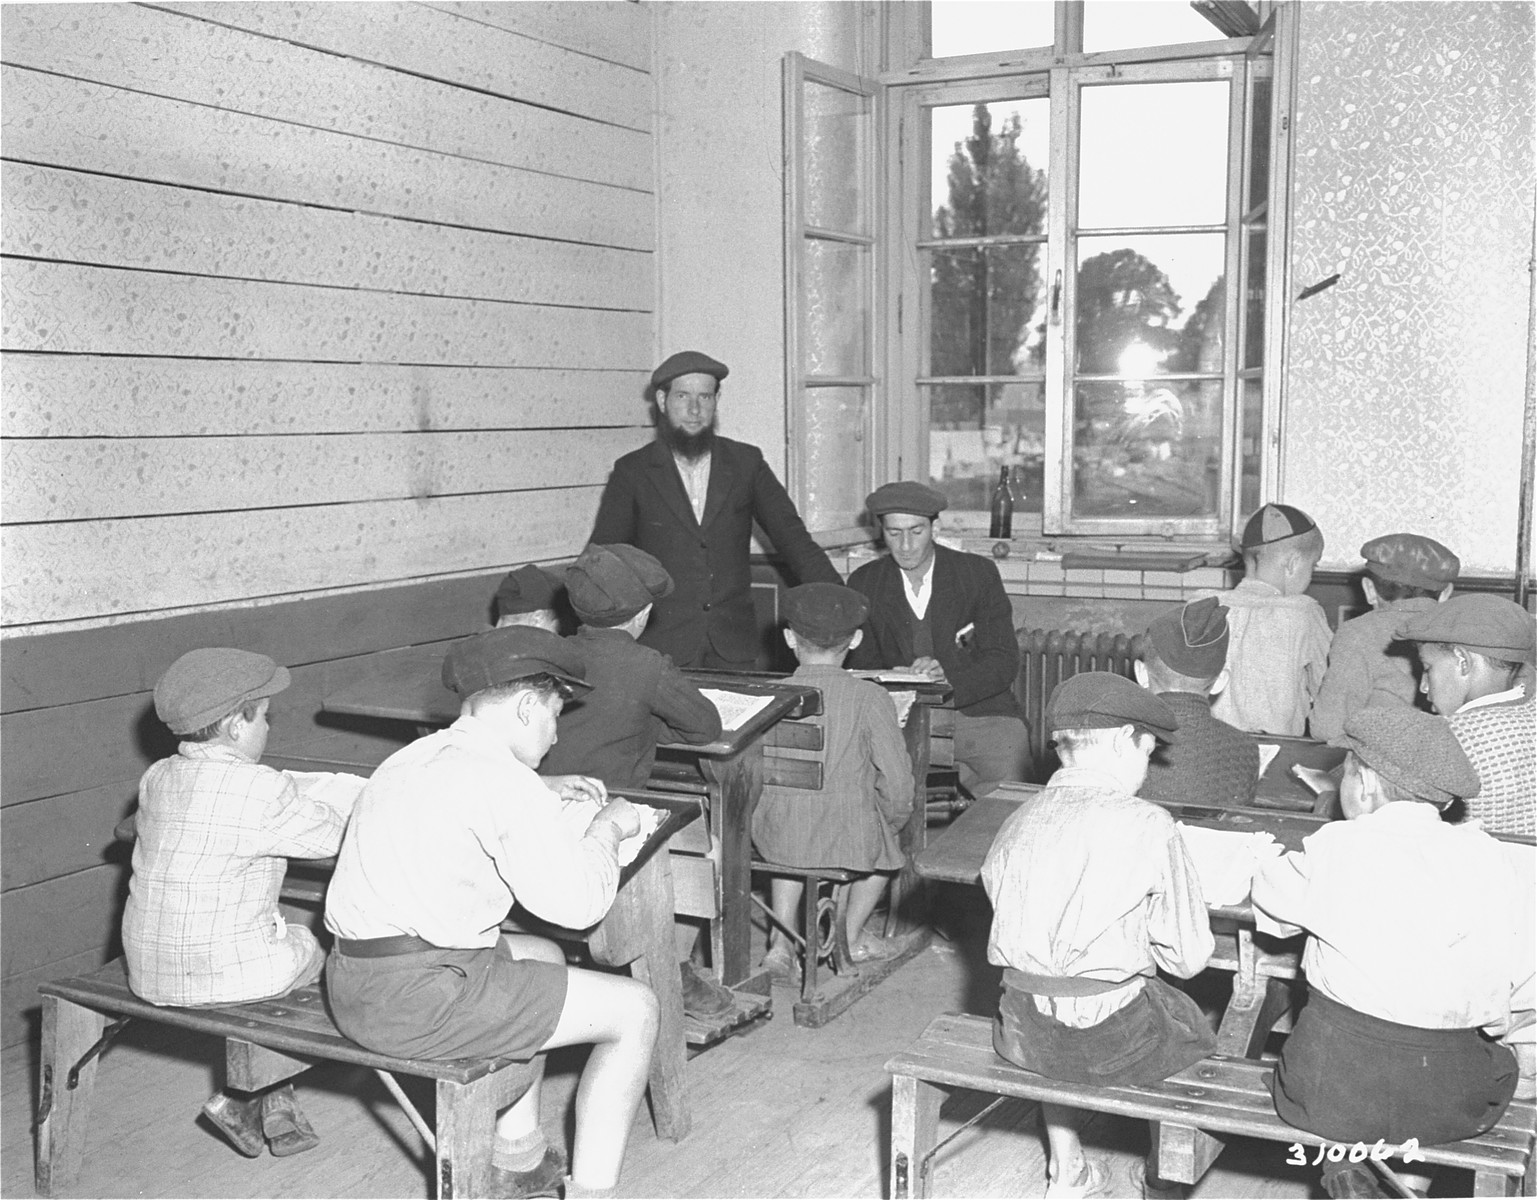 Boys at the Jewish displaced persons camp in Wetzlar go to the synagogue to study Torah.